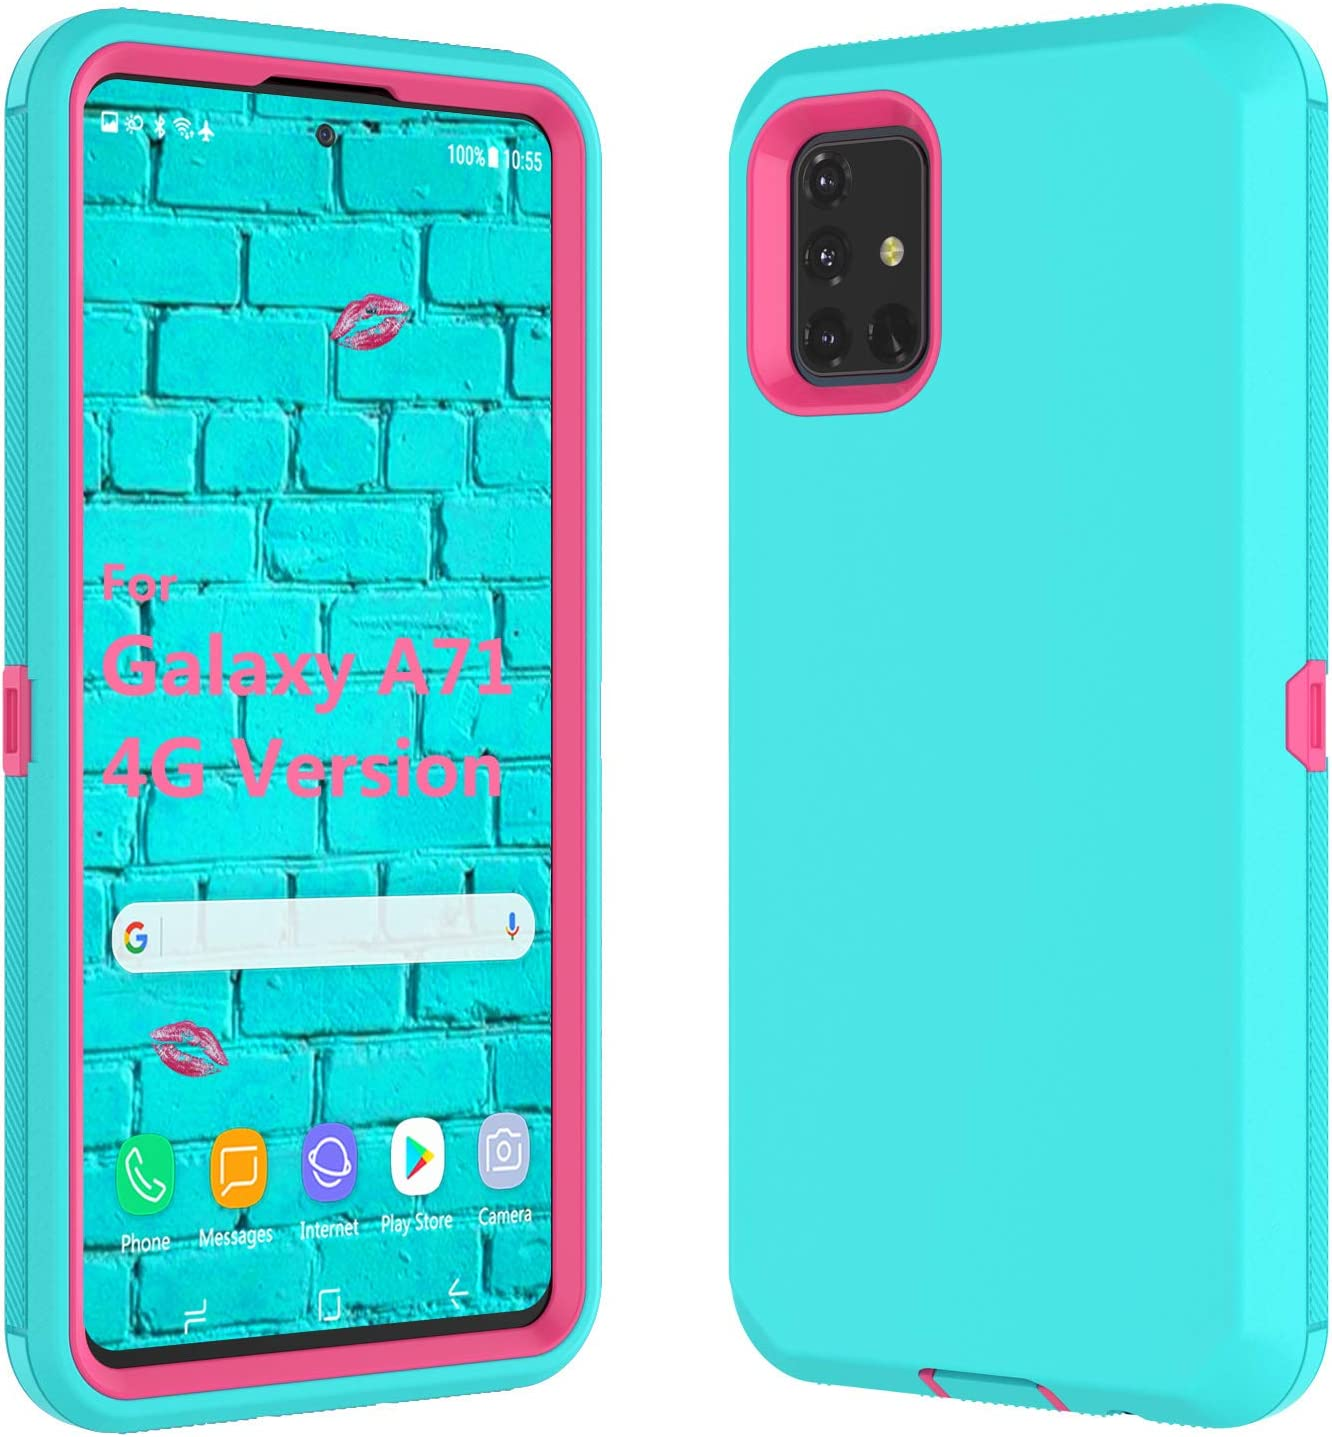 Galaxy A71 Case, Thybx [Drop Protection] Full Body Shock Dust Absorbing Grip Plastic Bumper TPU 3-Layers Durable Solid Phone Sturdy Hard Cases Cover for 6.7